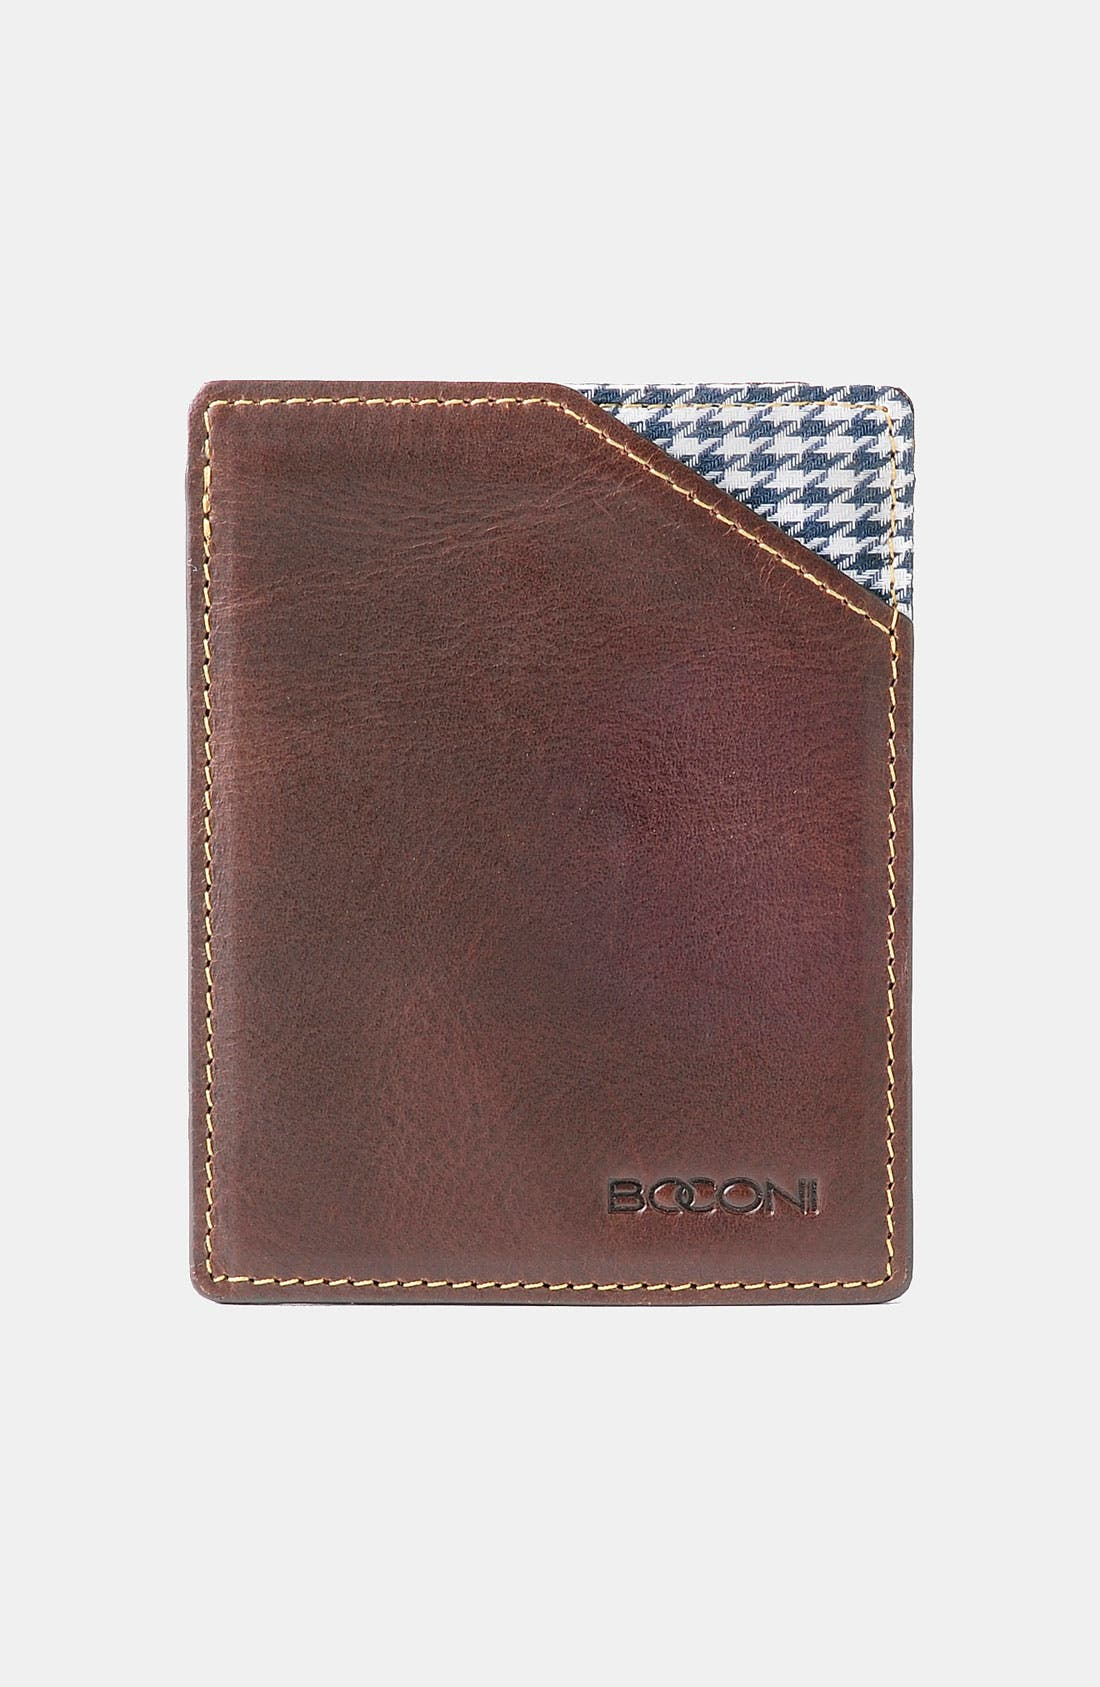 Alternate Image 1 Selected - Boconi 'Bryant' RFID Blocker Card Case